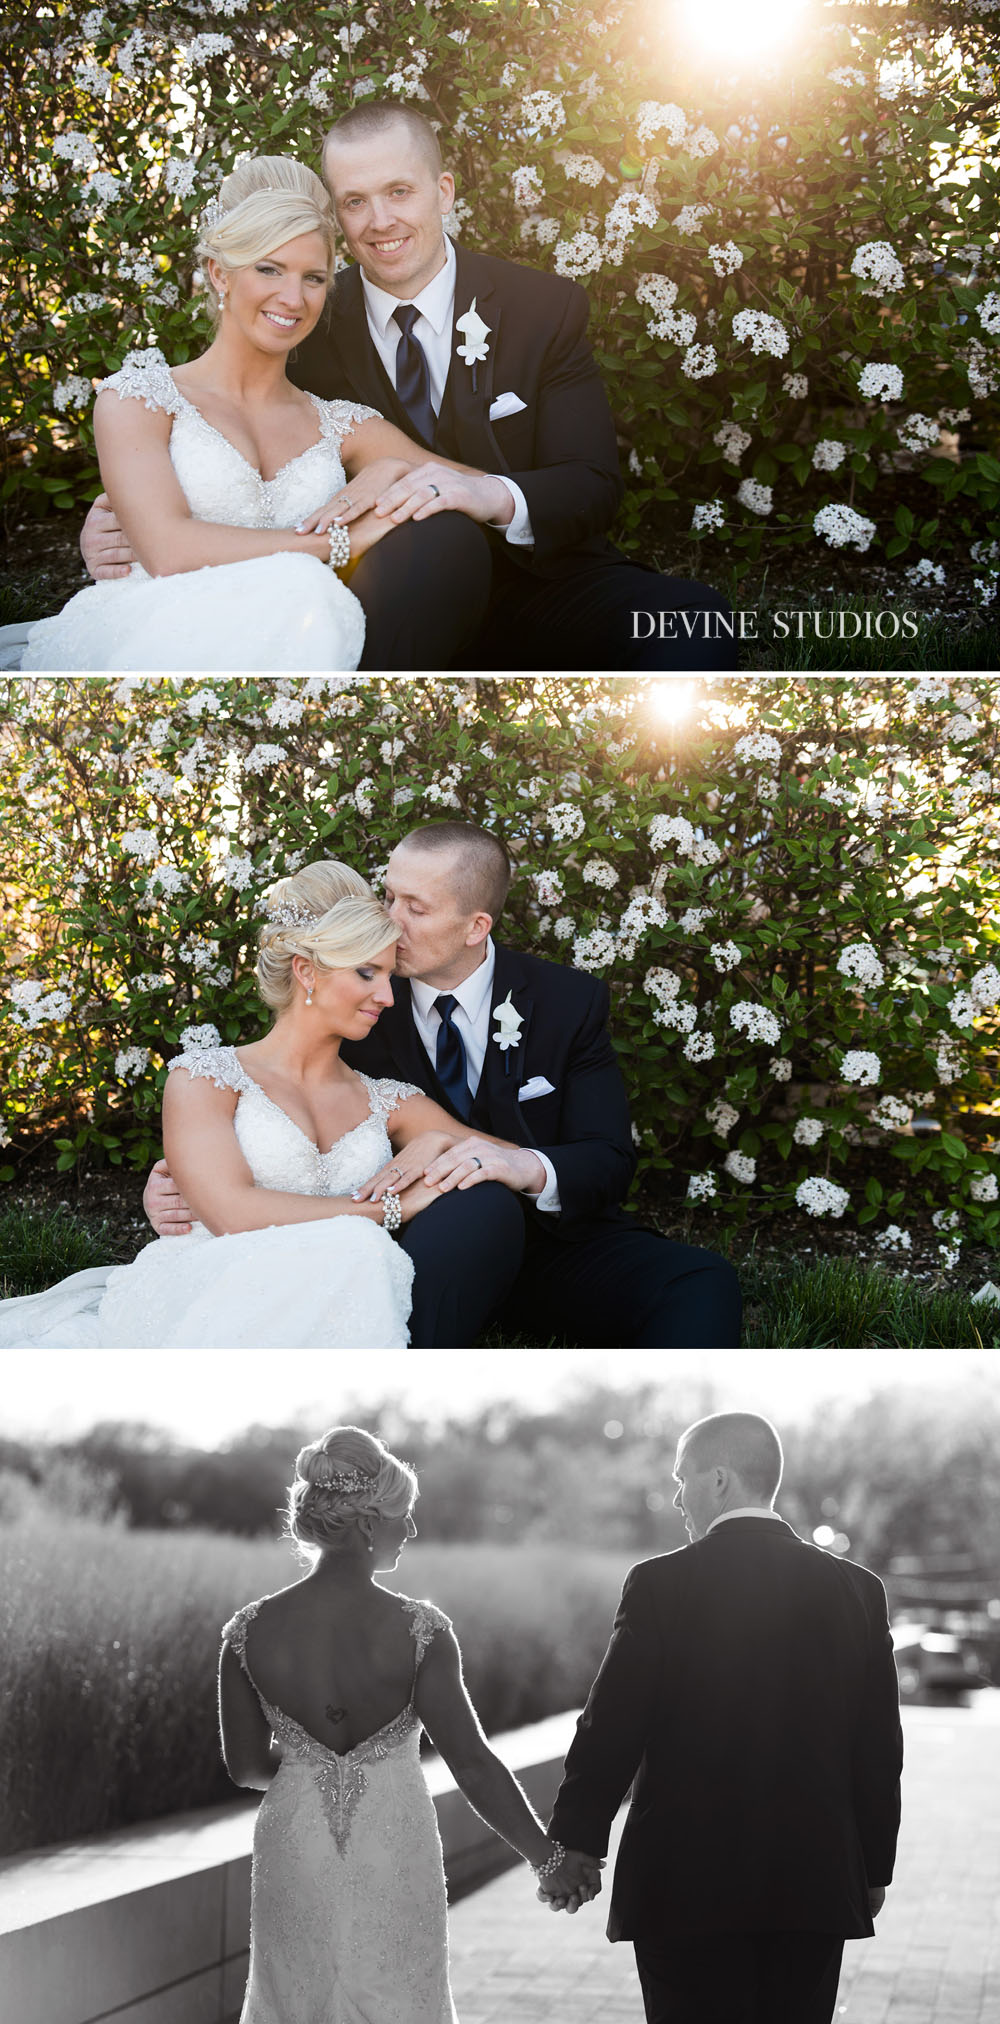 http://devinestudios.com/boudoir/wp-content/uploads/2016/05/10-839-post/Kansas-City-Wedding-Photography-Town-Pavilion-photojournalist-photographers15.jpg